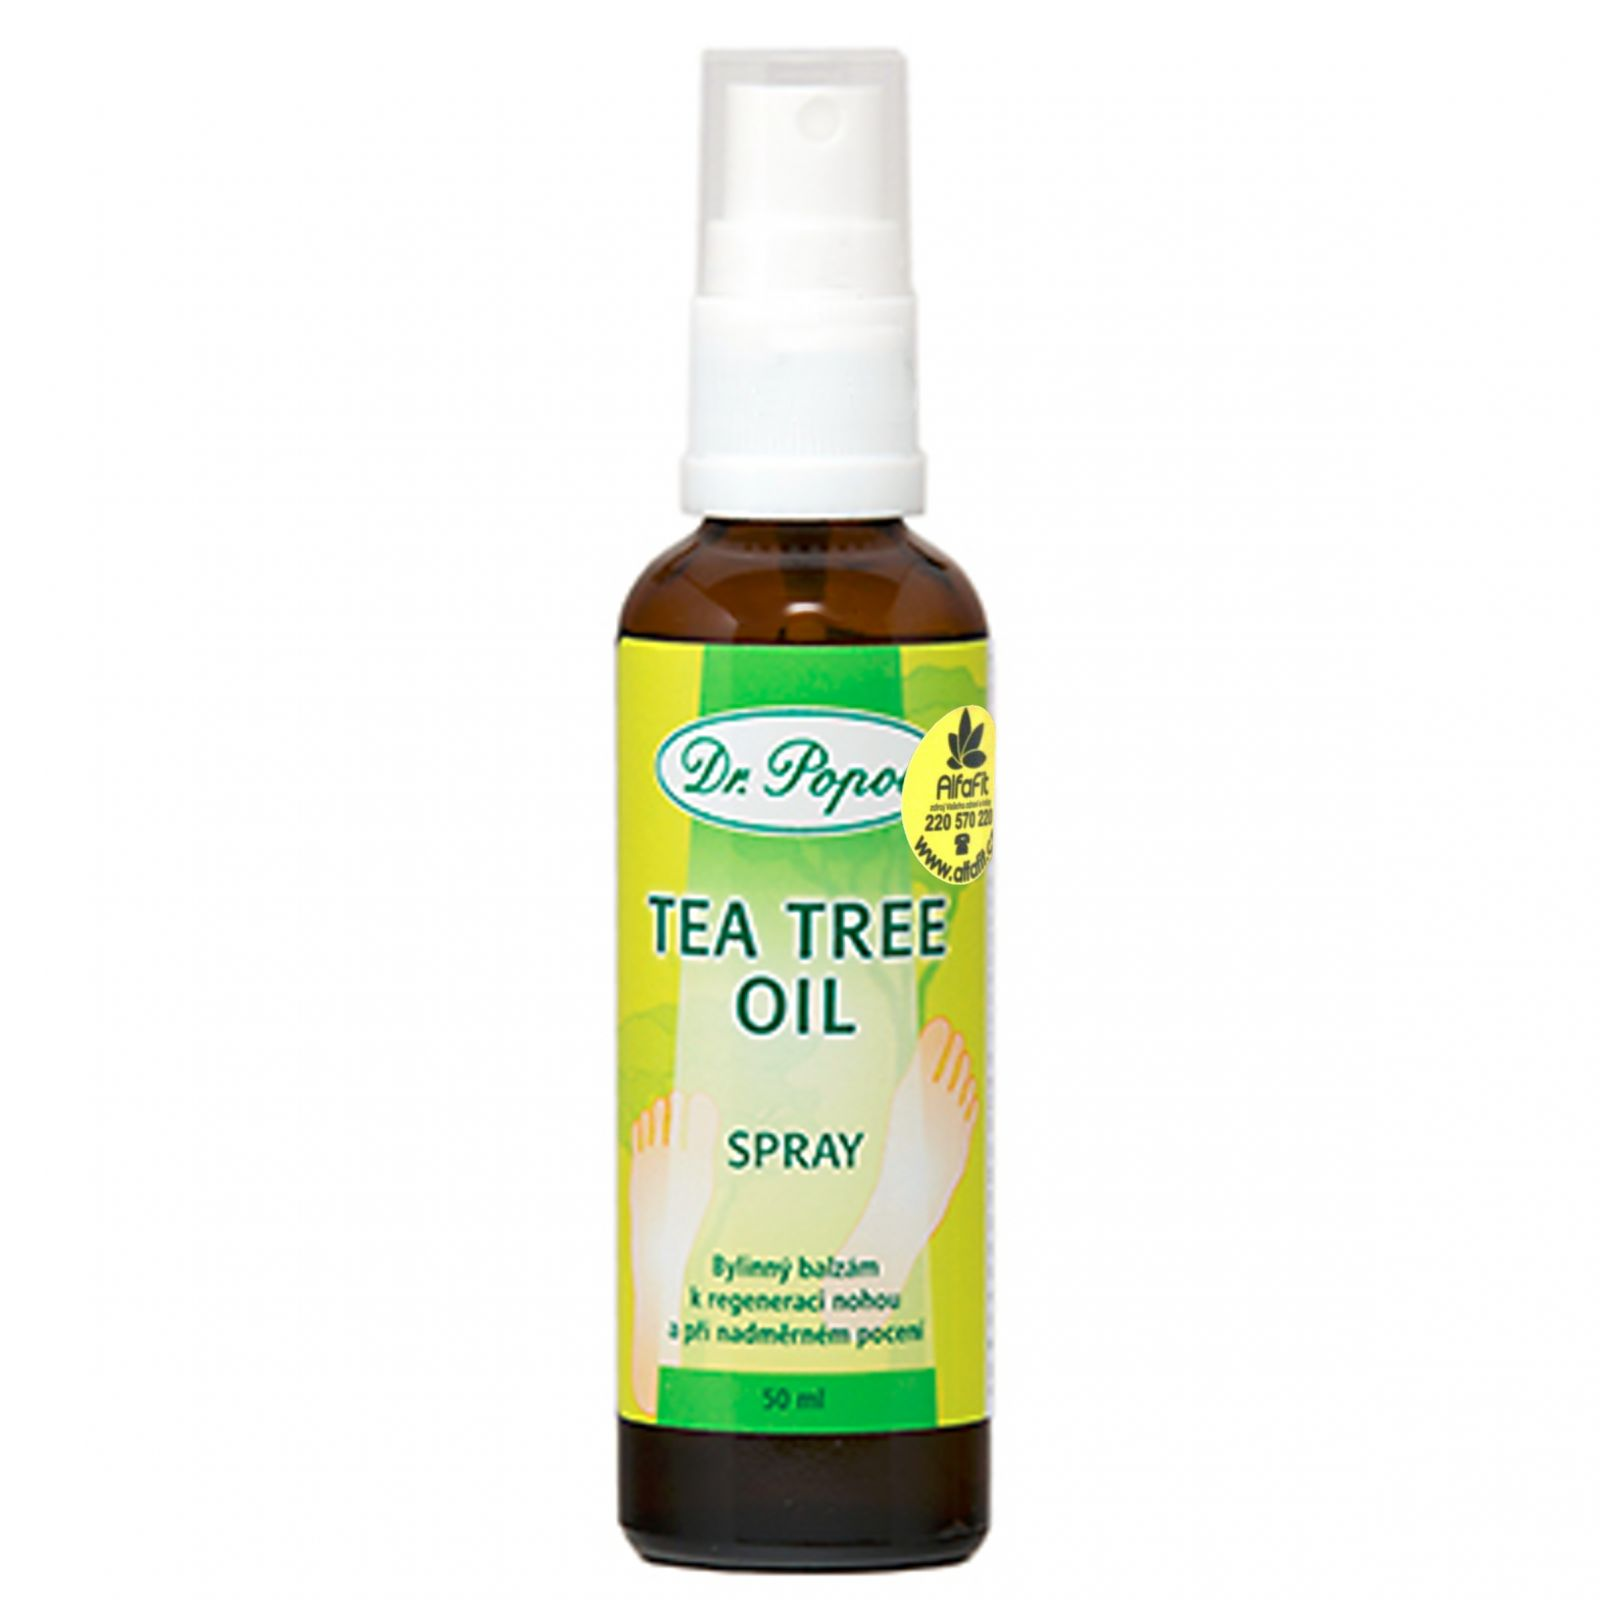 Dr. Popov tea tree spray 50 ml